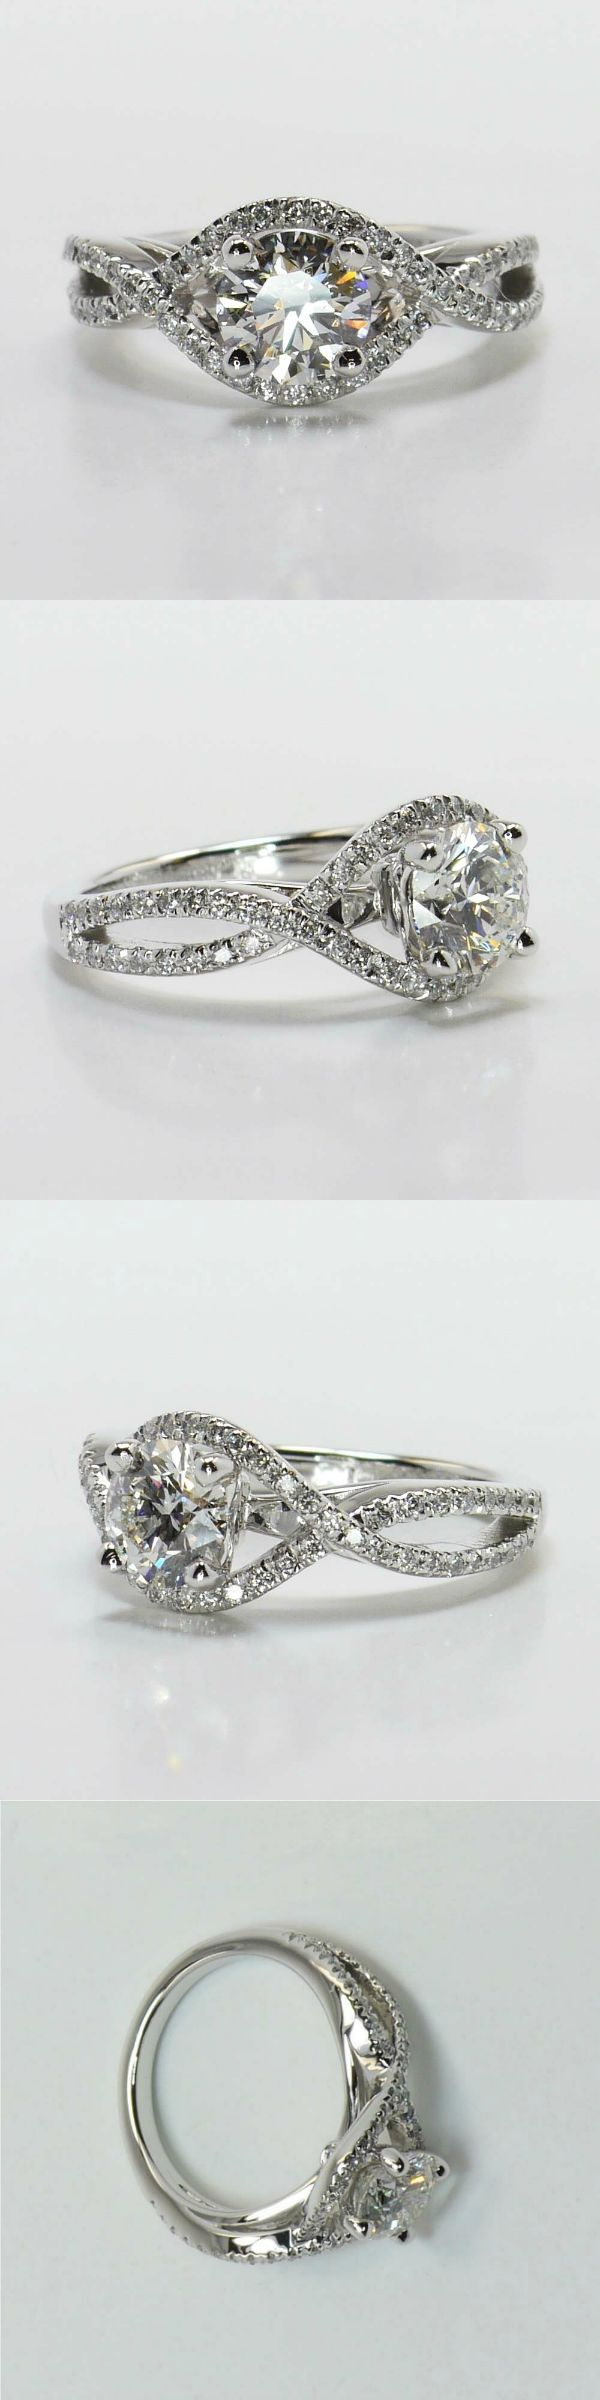 Cross Split Shank Diamond Ring in White Gold! Diamond/Gem Cost: $4,623 (Round 0.90 Ctw. Color: G Clarity: SI1 Cut: Super Ideal) Setting Cost: $1,195 This unique swirl engagement ring features pave set diamonds on interlocking bands surrounding the center stone. Metal: White Gold Side Shape: Round Side Carat: 0.40 Setting Type: Pave! Total Cost: $5,818 https://www.brilliance.com/recently-purchased-rings/cross-split-shank-diamond-ring-white-gold